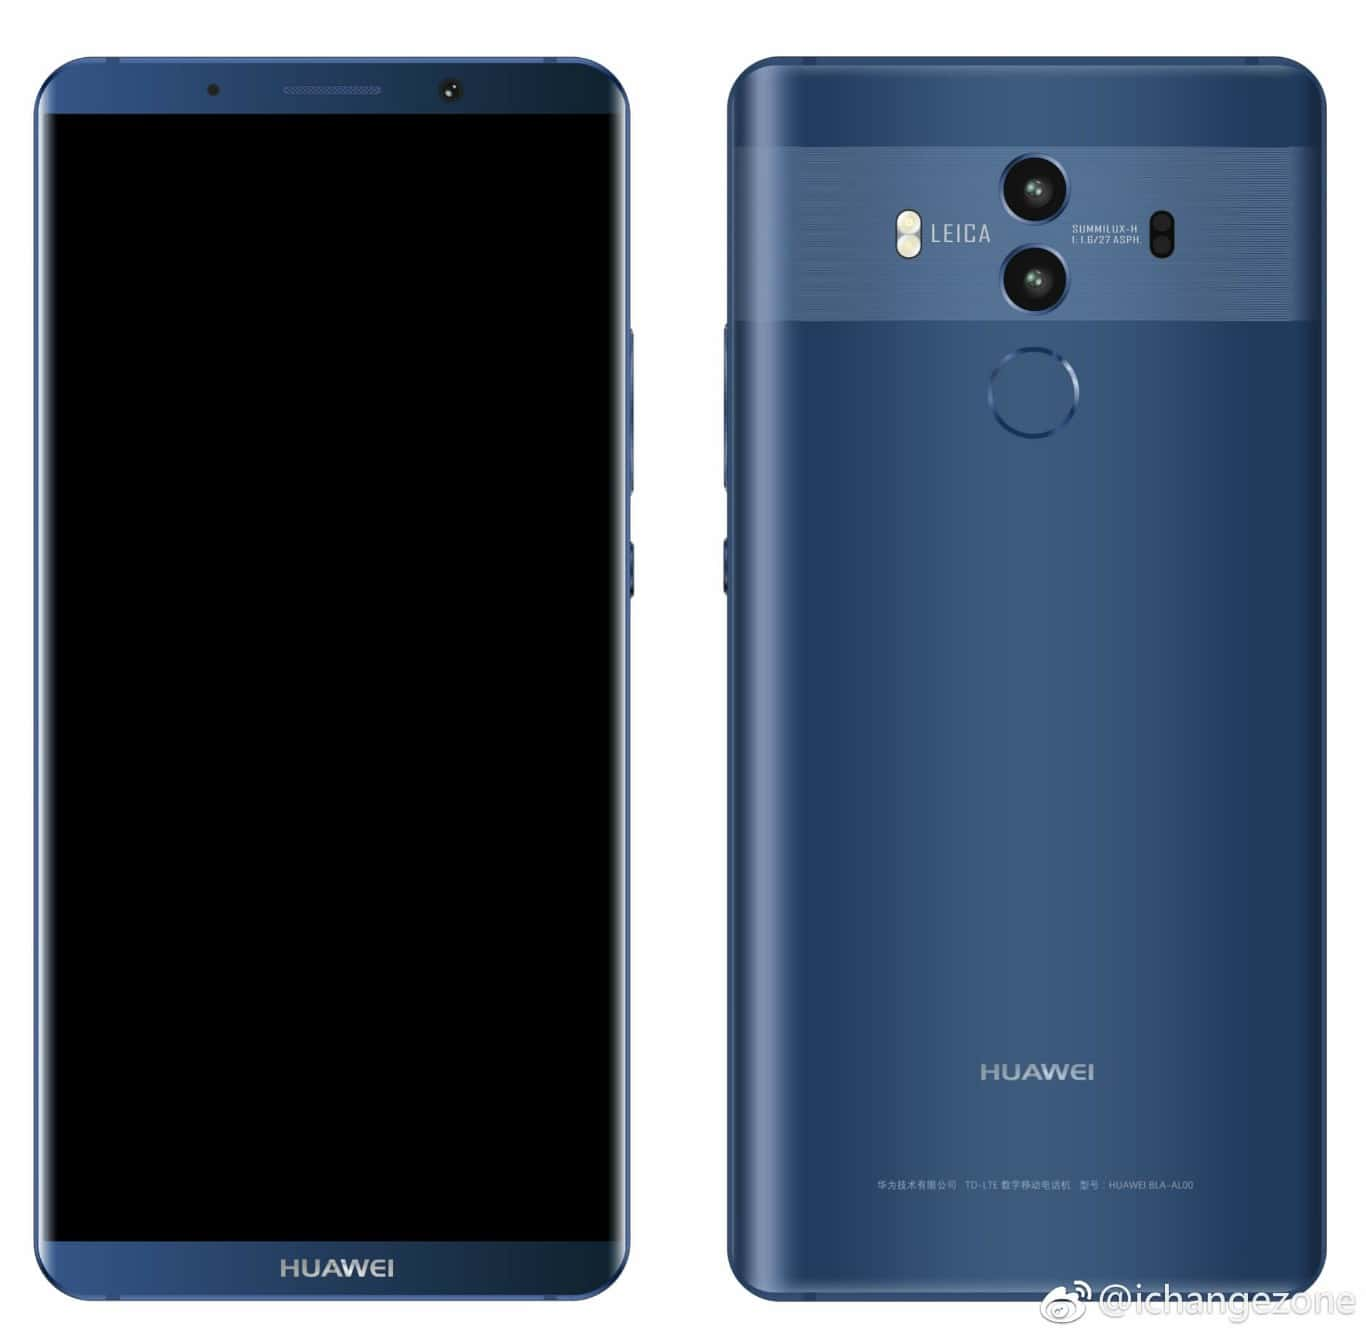 new huawei mate 10 pro renders surface thin bezels in tow android news. Black Bedroom Furniture Sets. Home Design Ideas